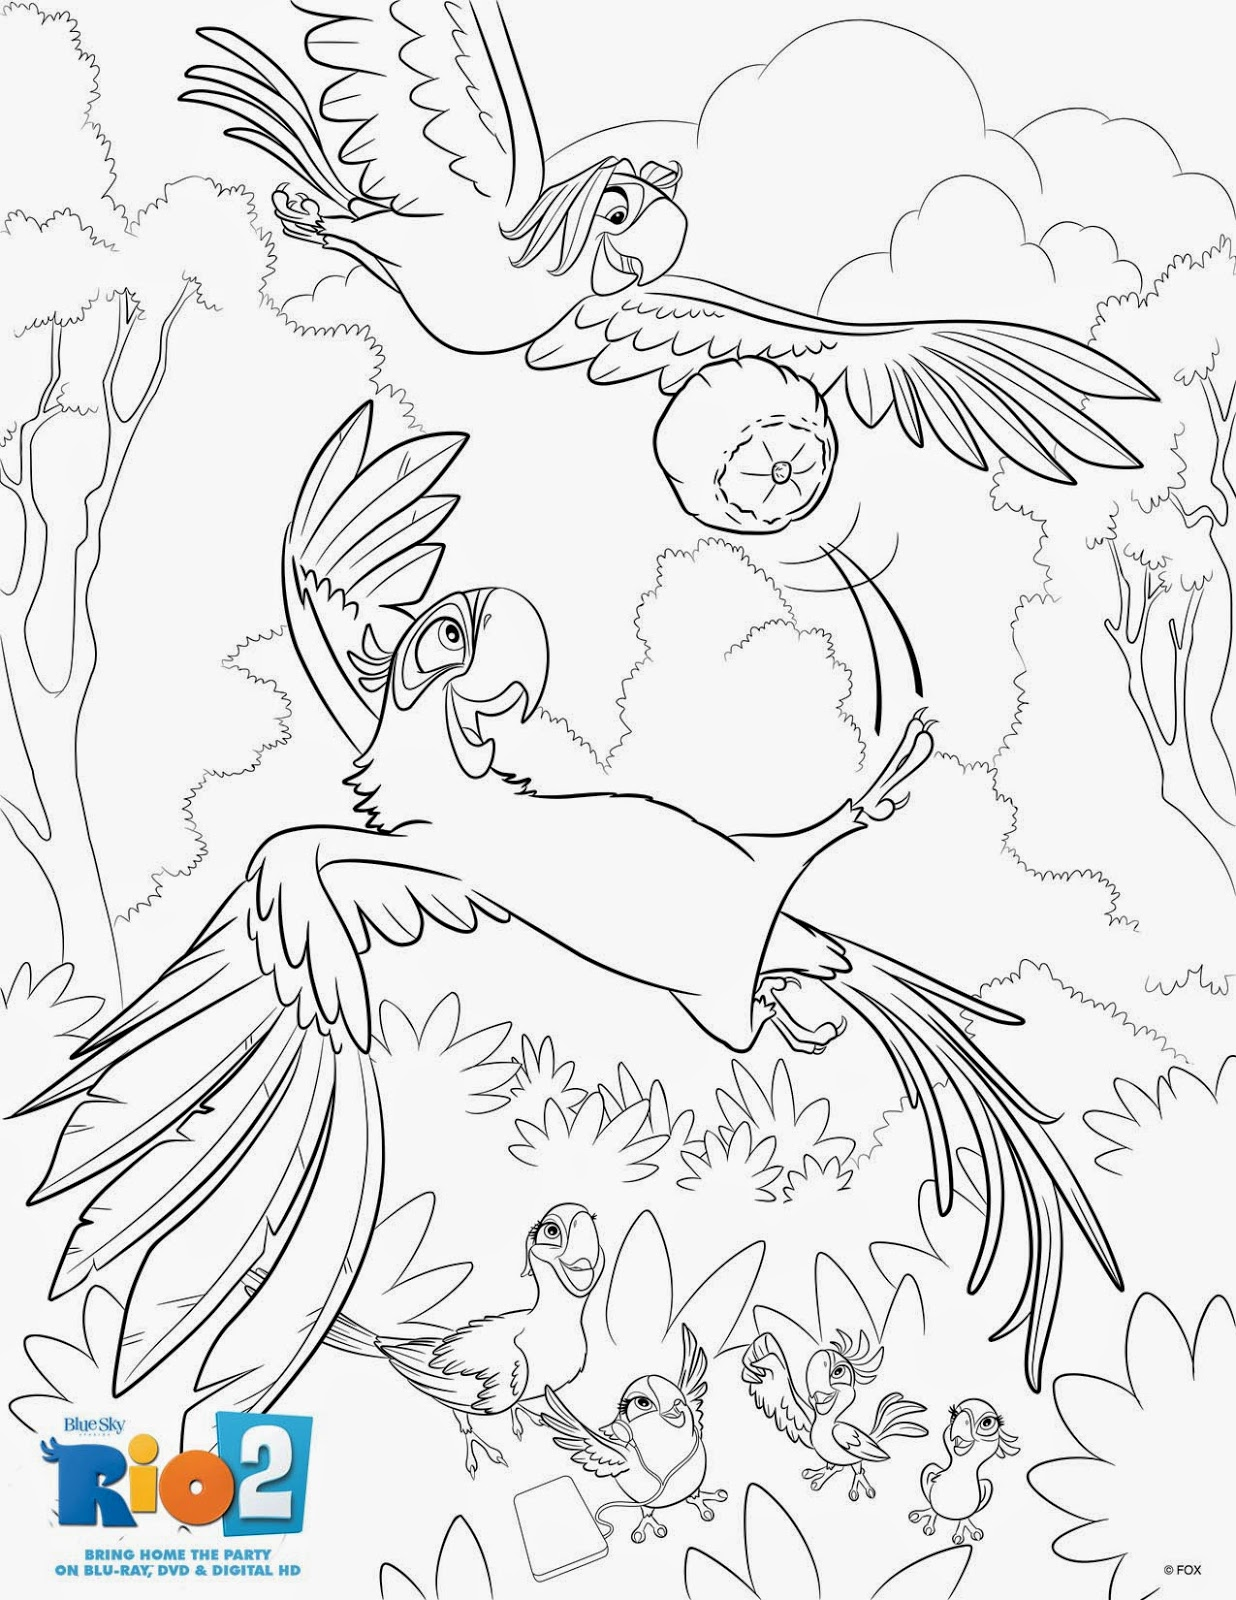 New Age Mama: Rio 2 Features, Coloring & Activity Sheets